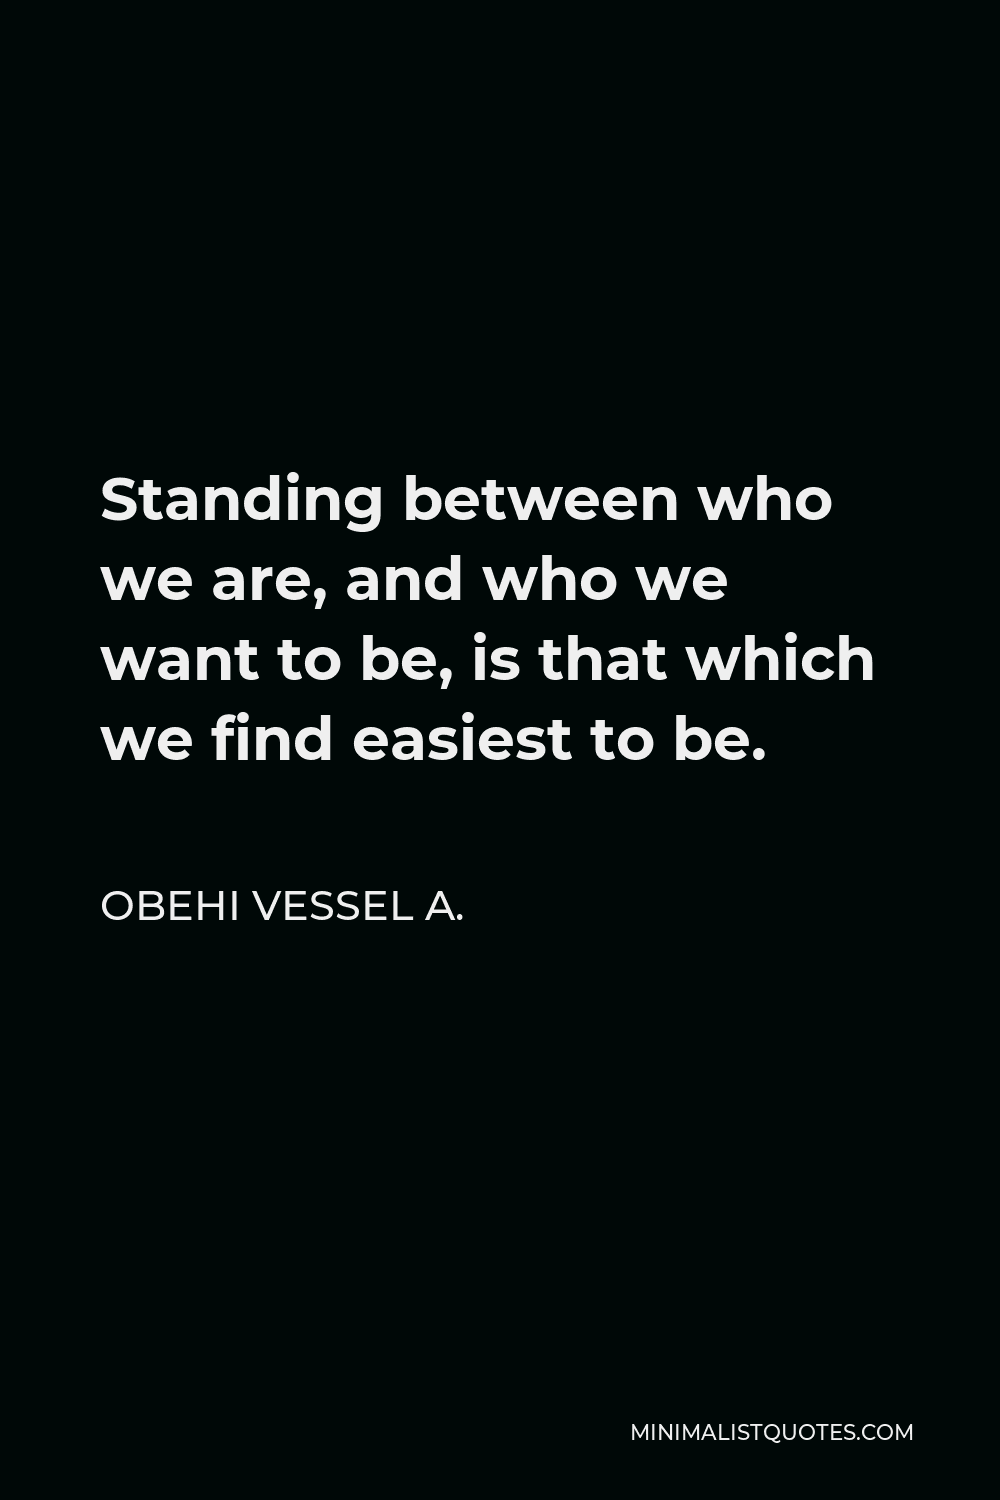 Obehi Vessel A. Quote - Standing between who we are, and who we want to be, is that which we find easiest to be.